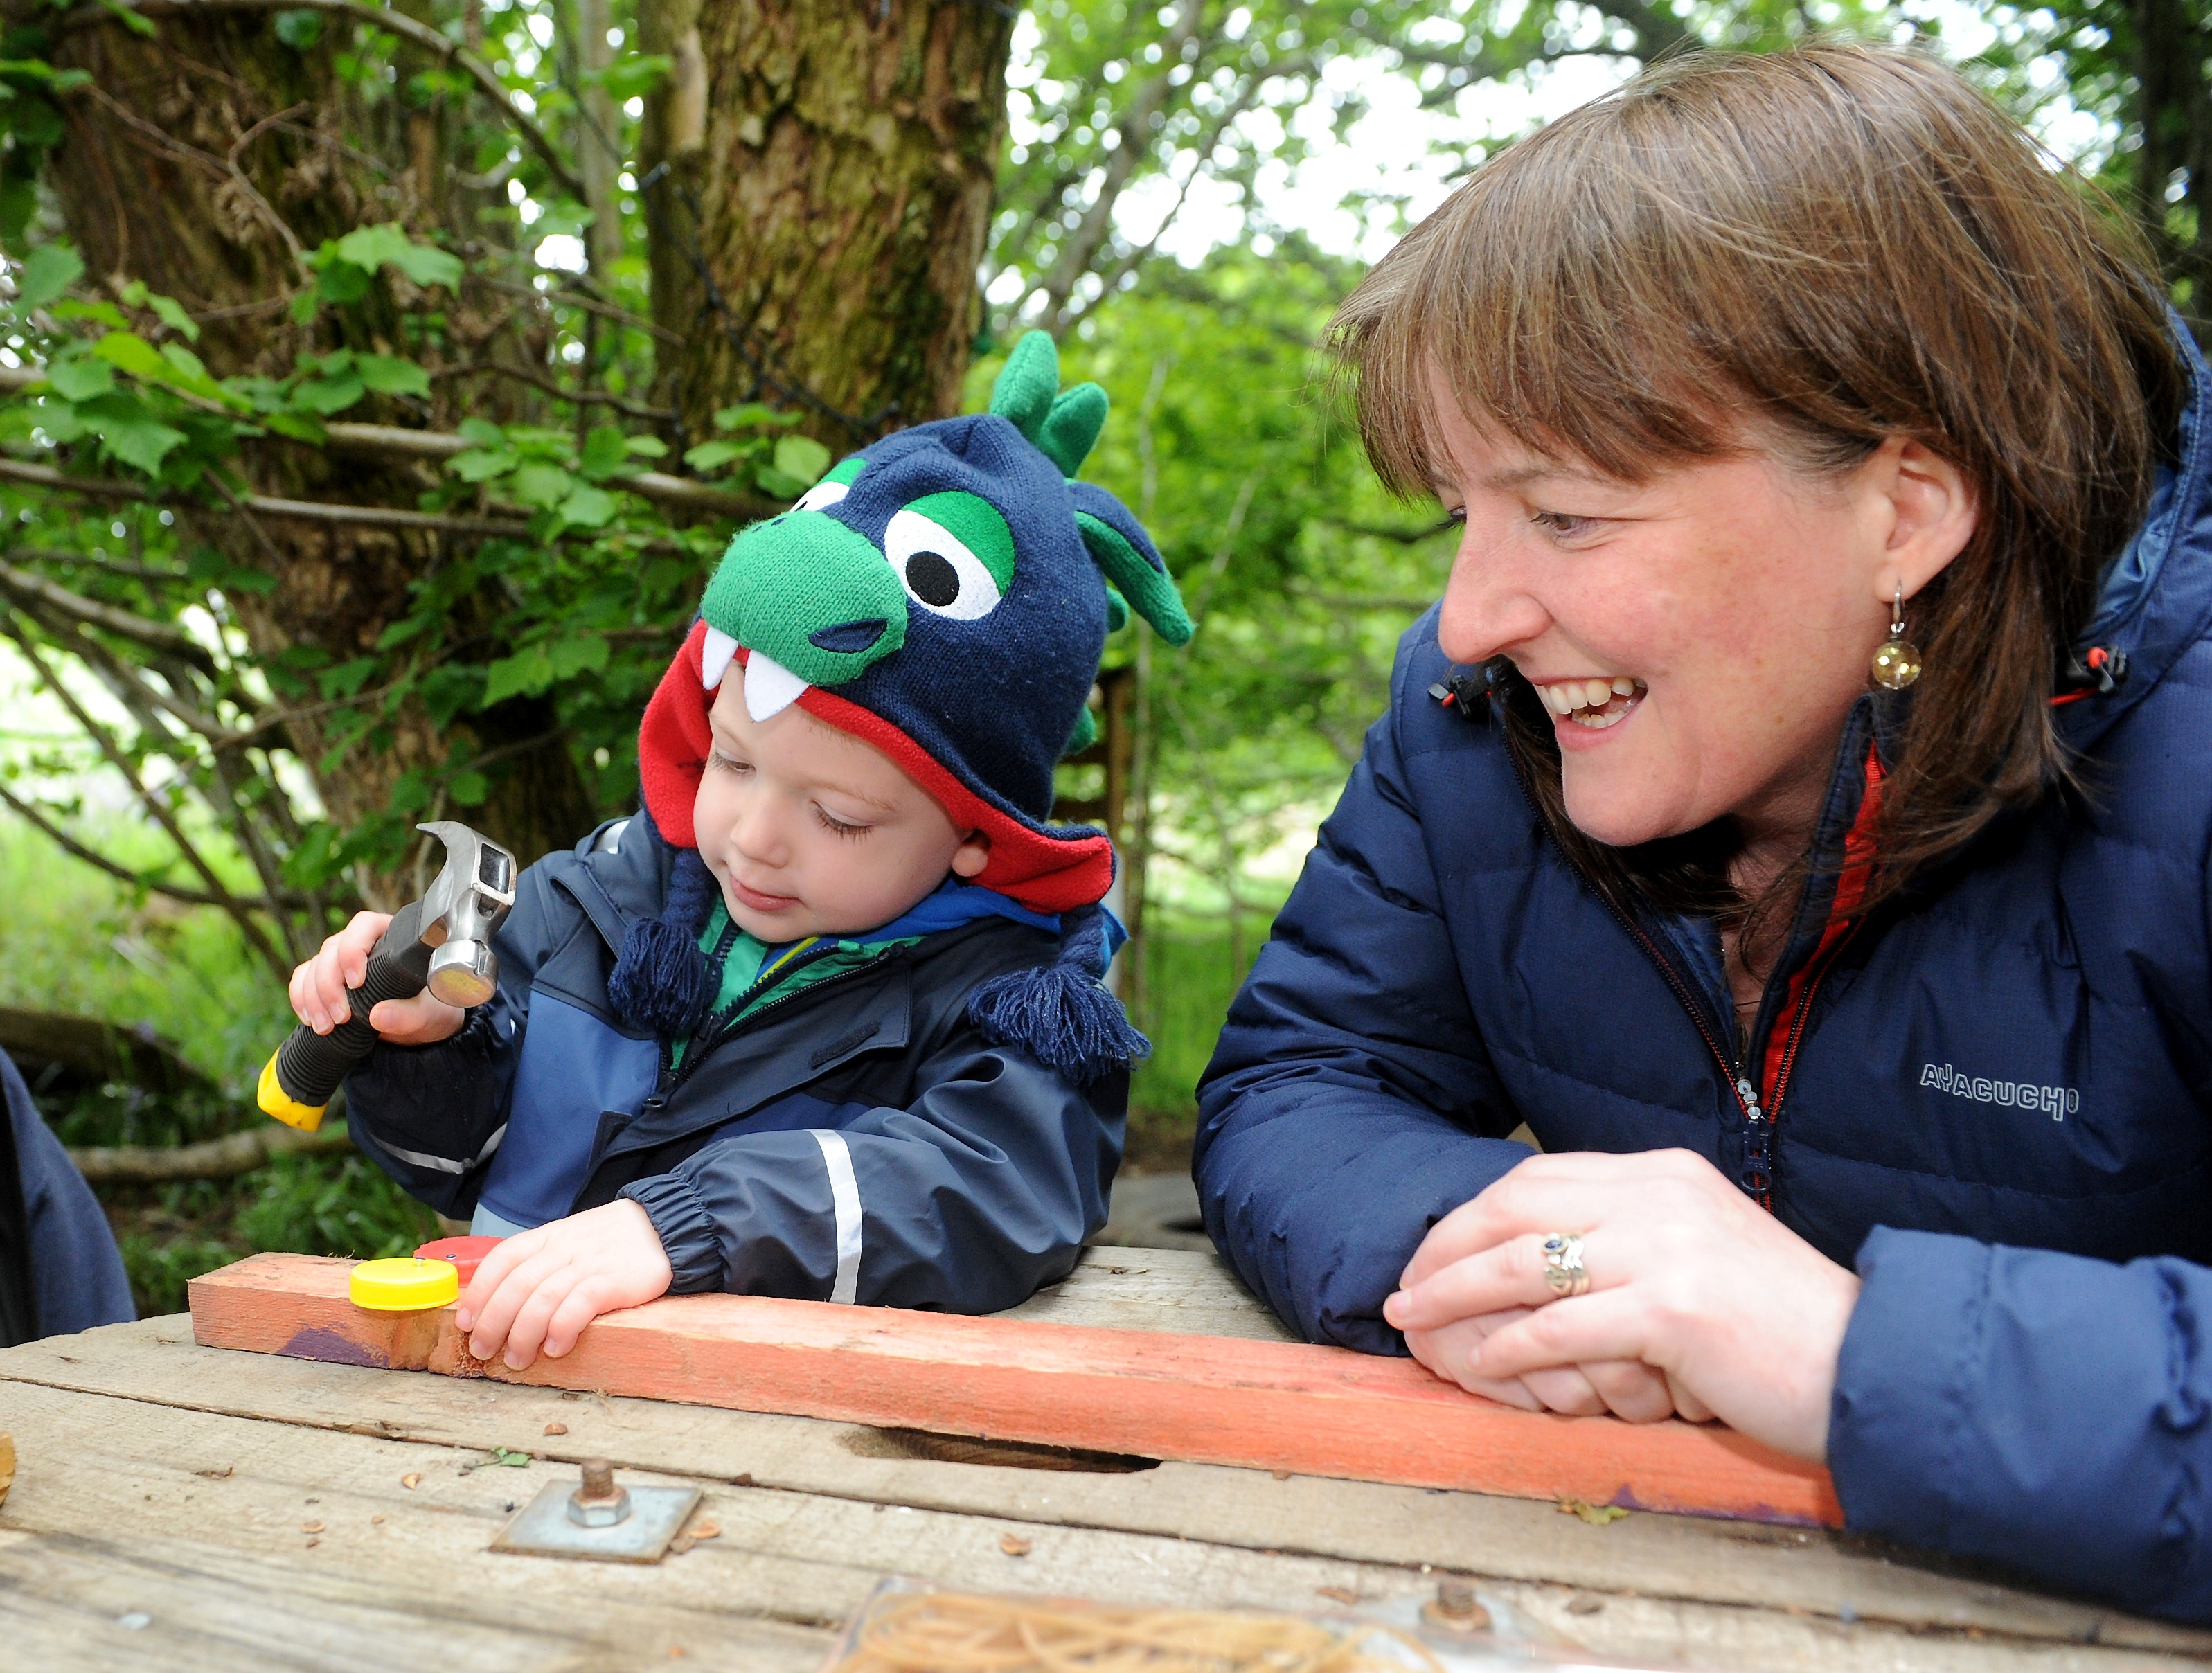 Marie Todd, Minister for Childcare and early years yesterday visited the children of the Tornagrain Nursery as part of National Outdoor Classroom Day.